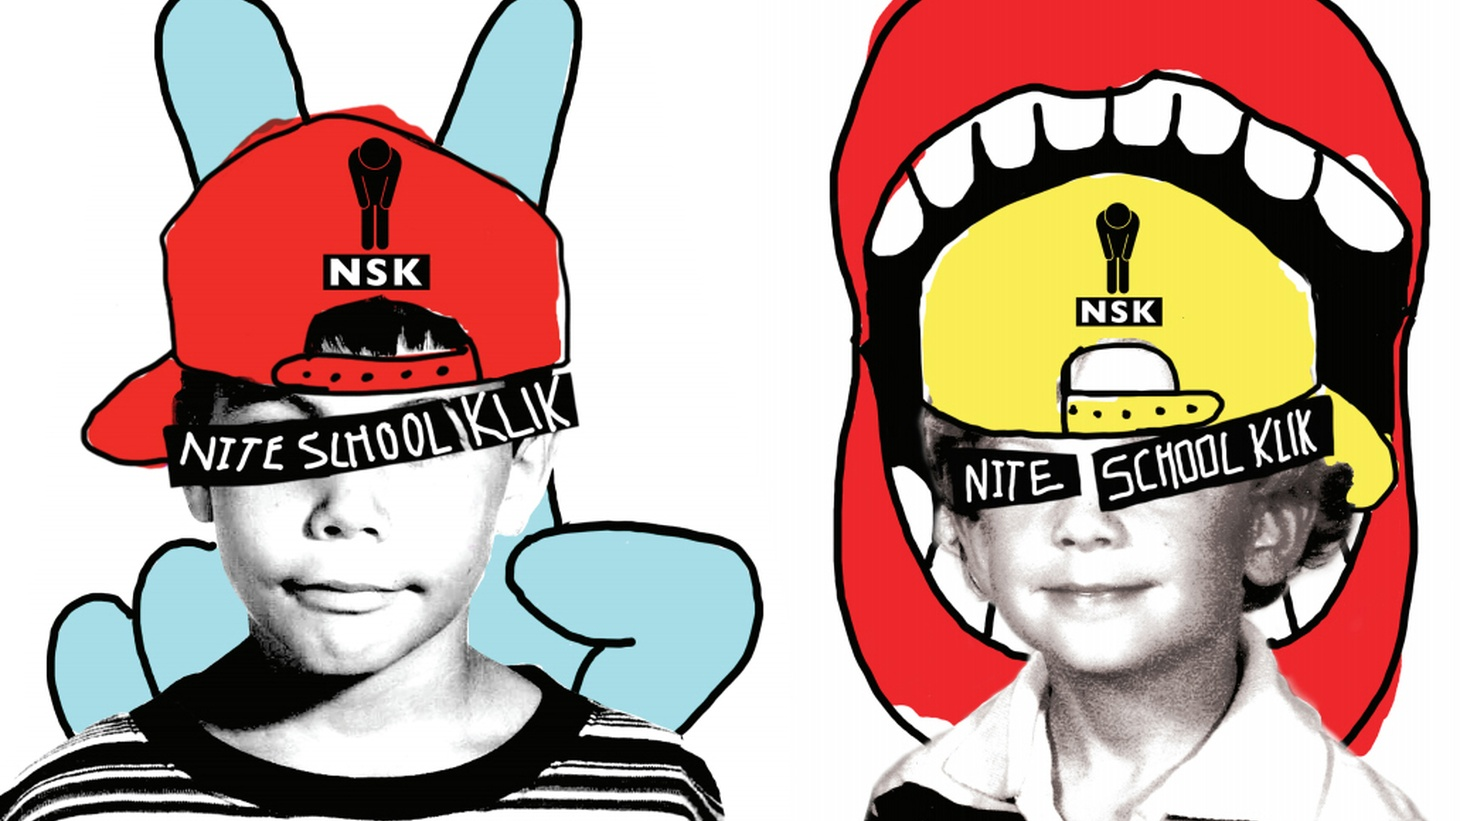 In 2012, DJ Shadow started rummaging through different music platforms to find some new music to play in his sets. G Jones was one of his favorite finds, and soon after they teamed up as Nite School Klik.